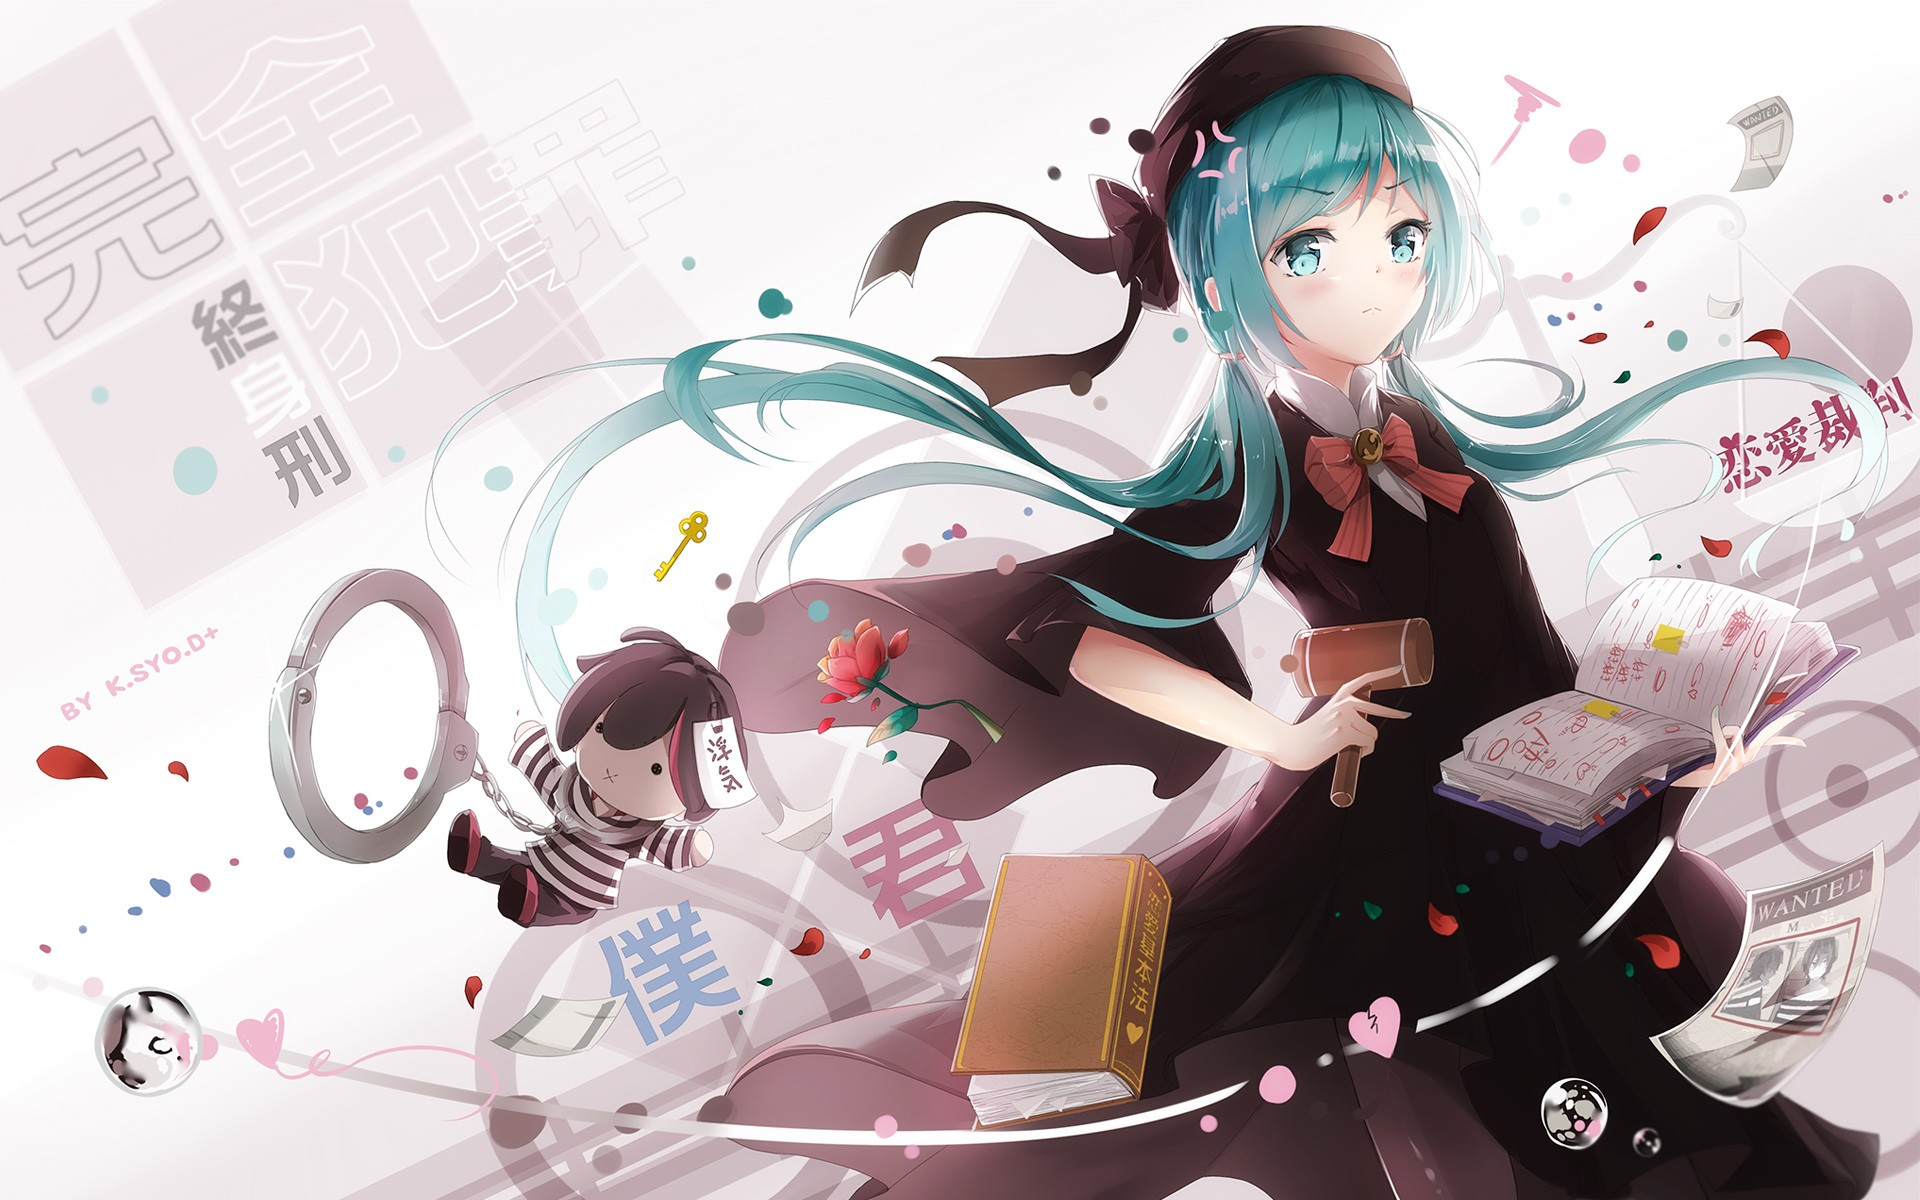 Anime Boy And Girl Couple Wallpaper Vocaloid Hatsune Miku Wallpapers Hd Wallpapers Id 17708